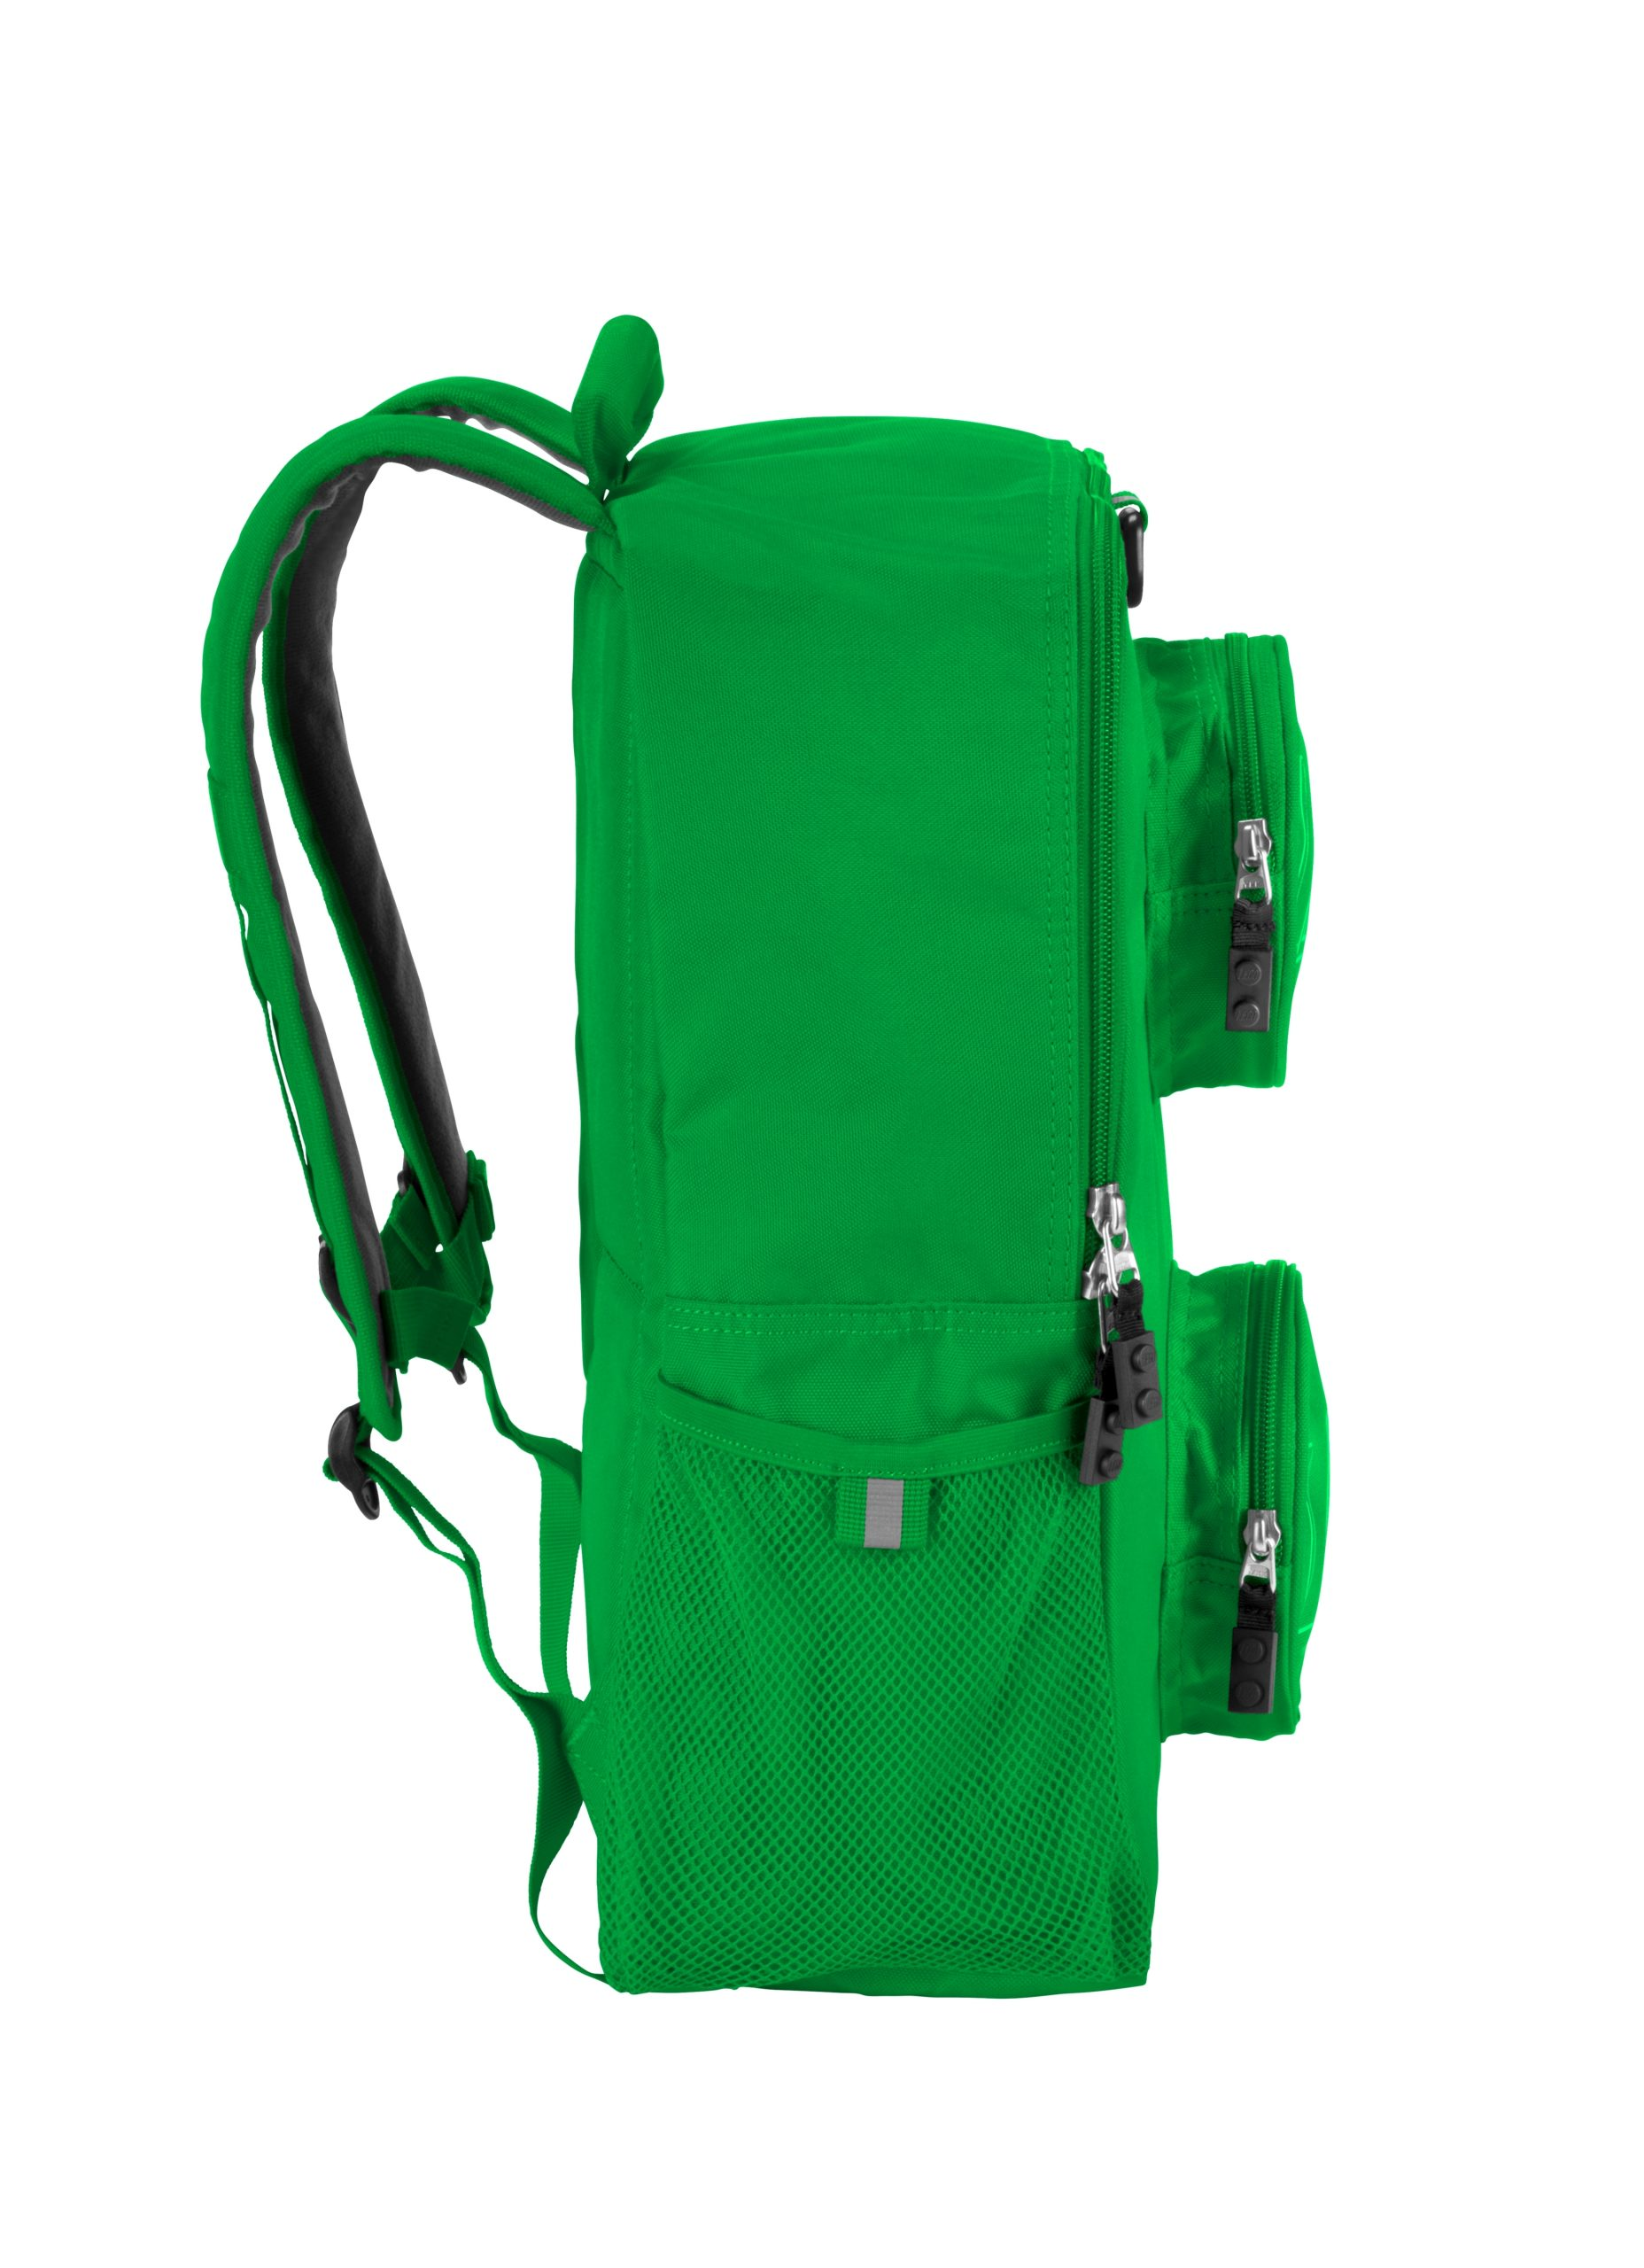 lego 5005525 brick backpack green scaled